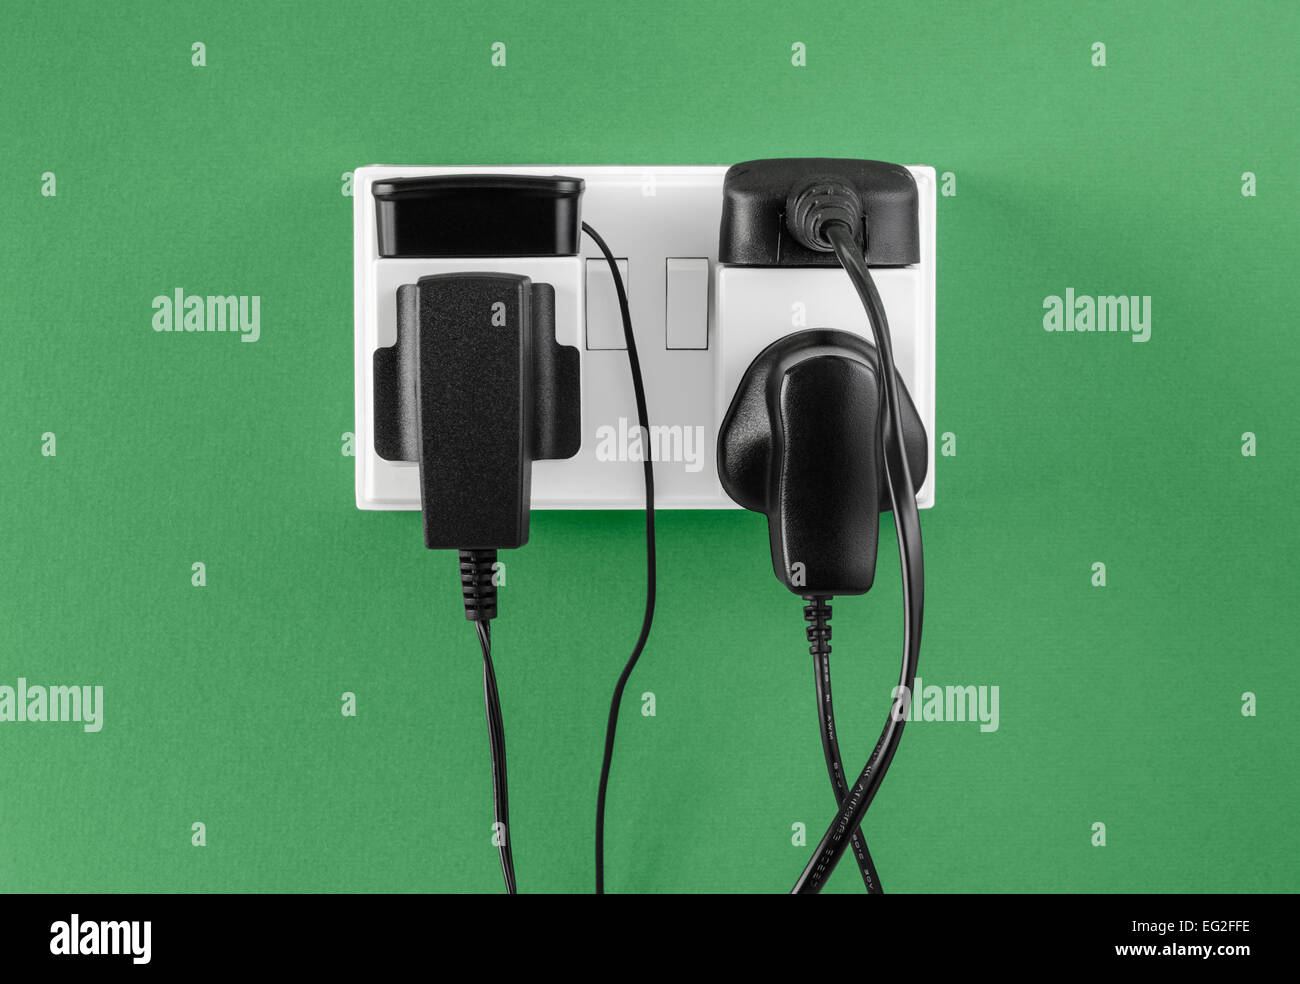 Battery chargers plugged in to outlet - Stock Image